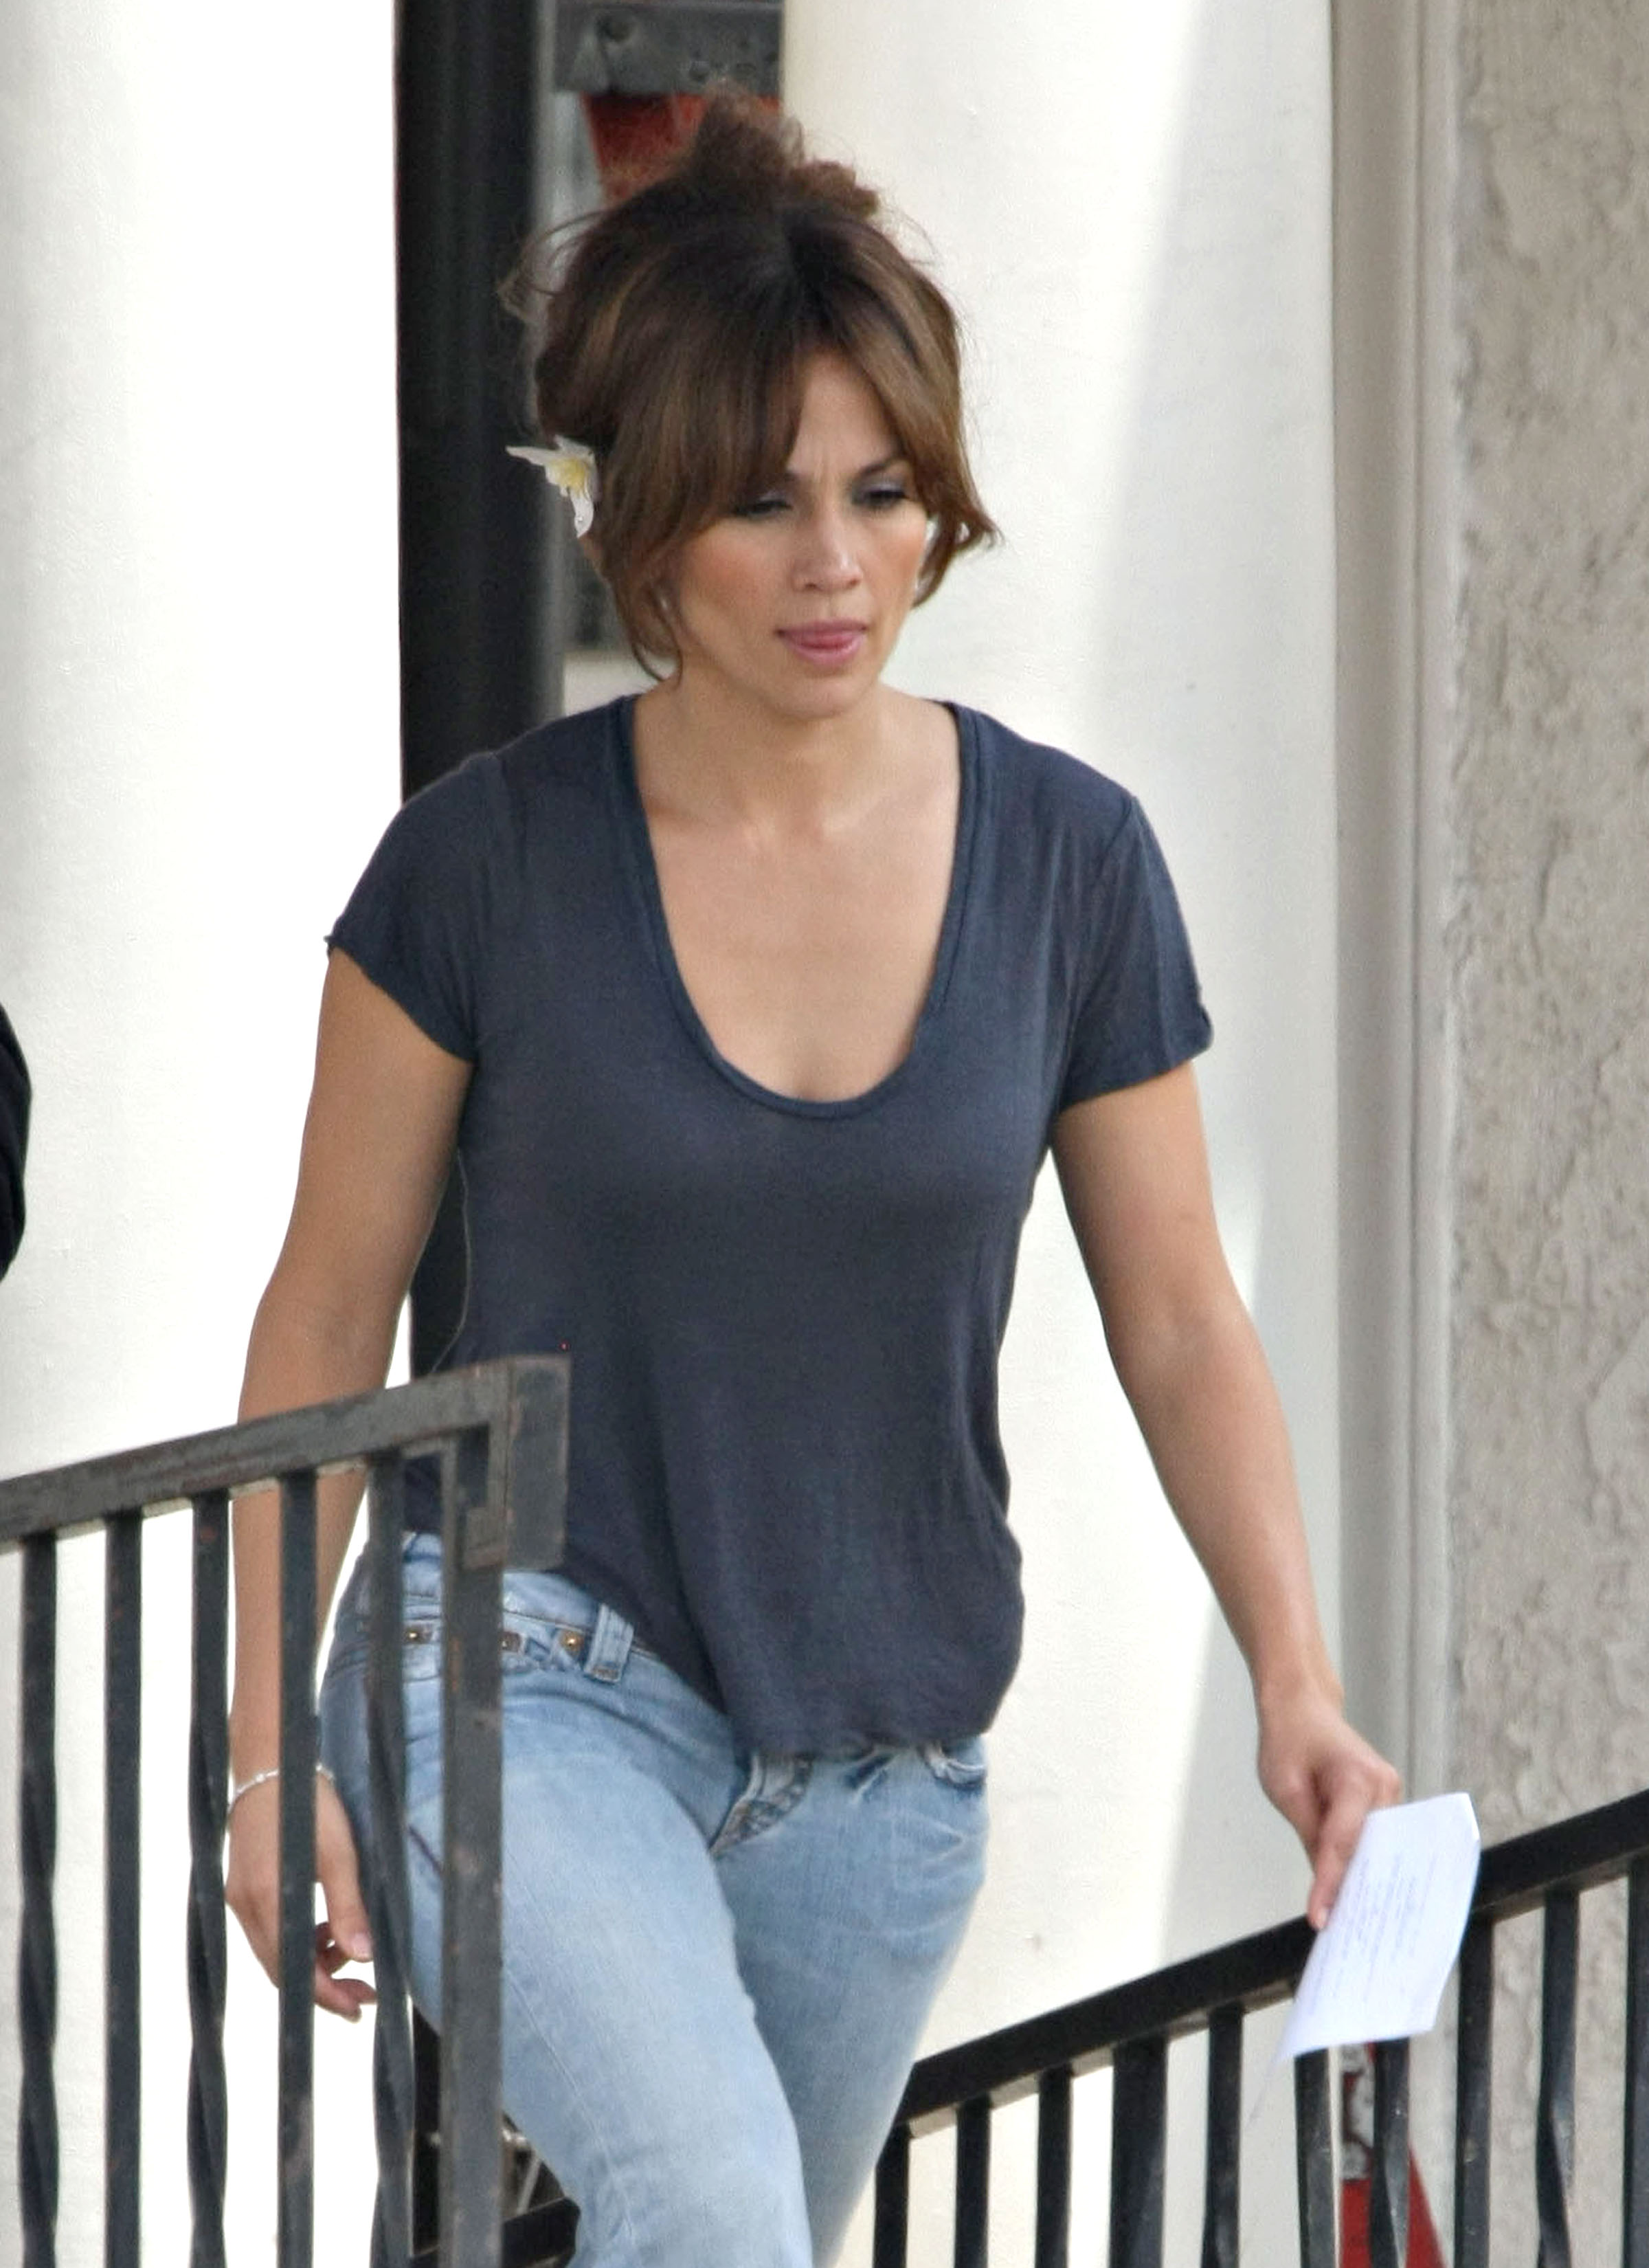 35898_Preppie_-_Jennifer_Lopez_on_The_Backup_Plan_set_in_Los_Angeles_-_June_15_2009_436_122_468lo.jpg